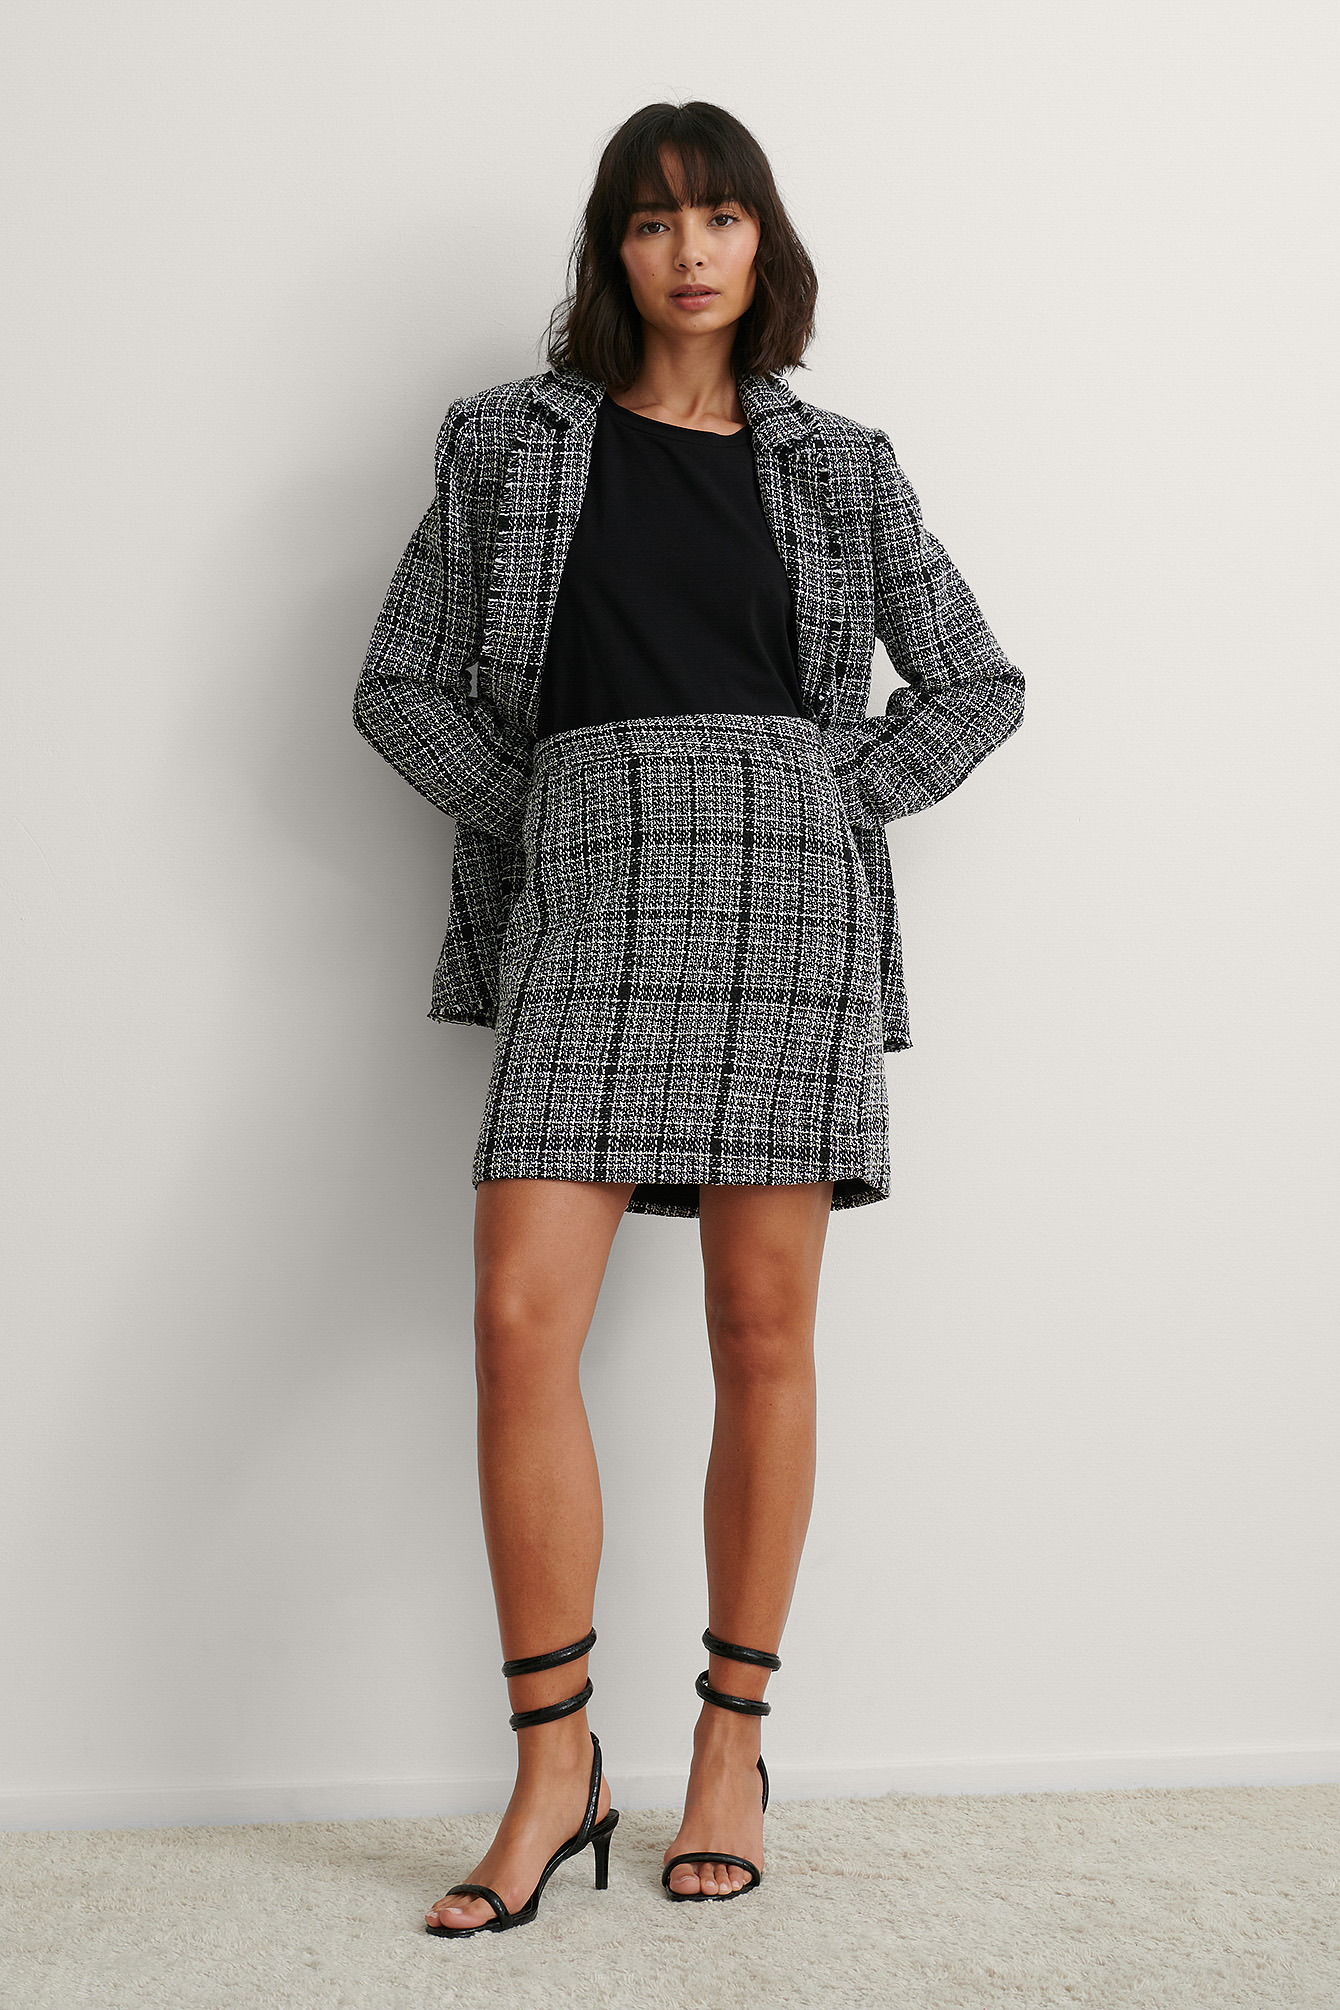 Black Check Jupe Courte En Tweed